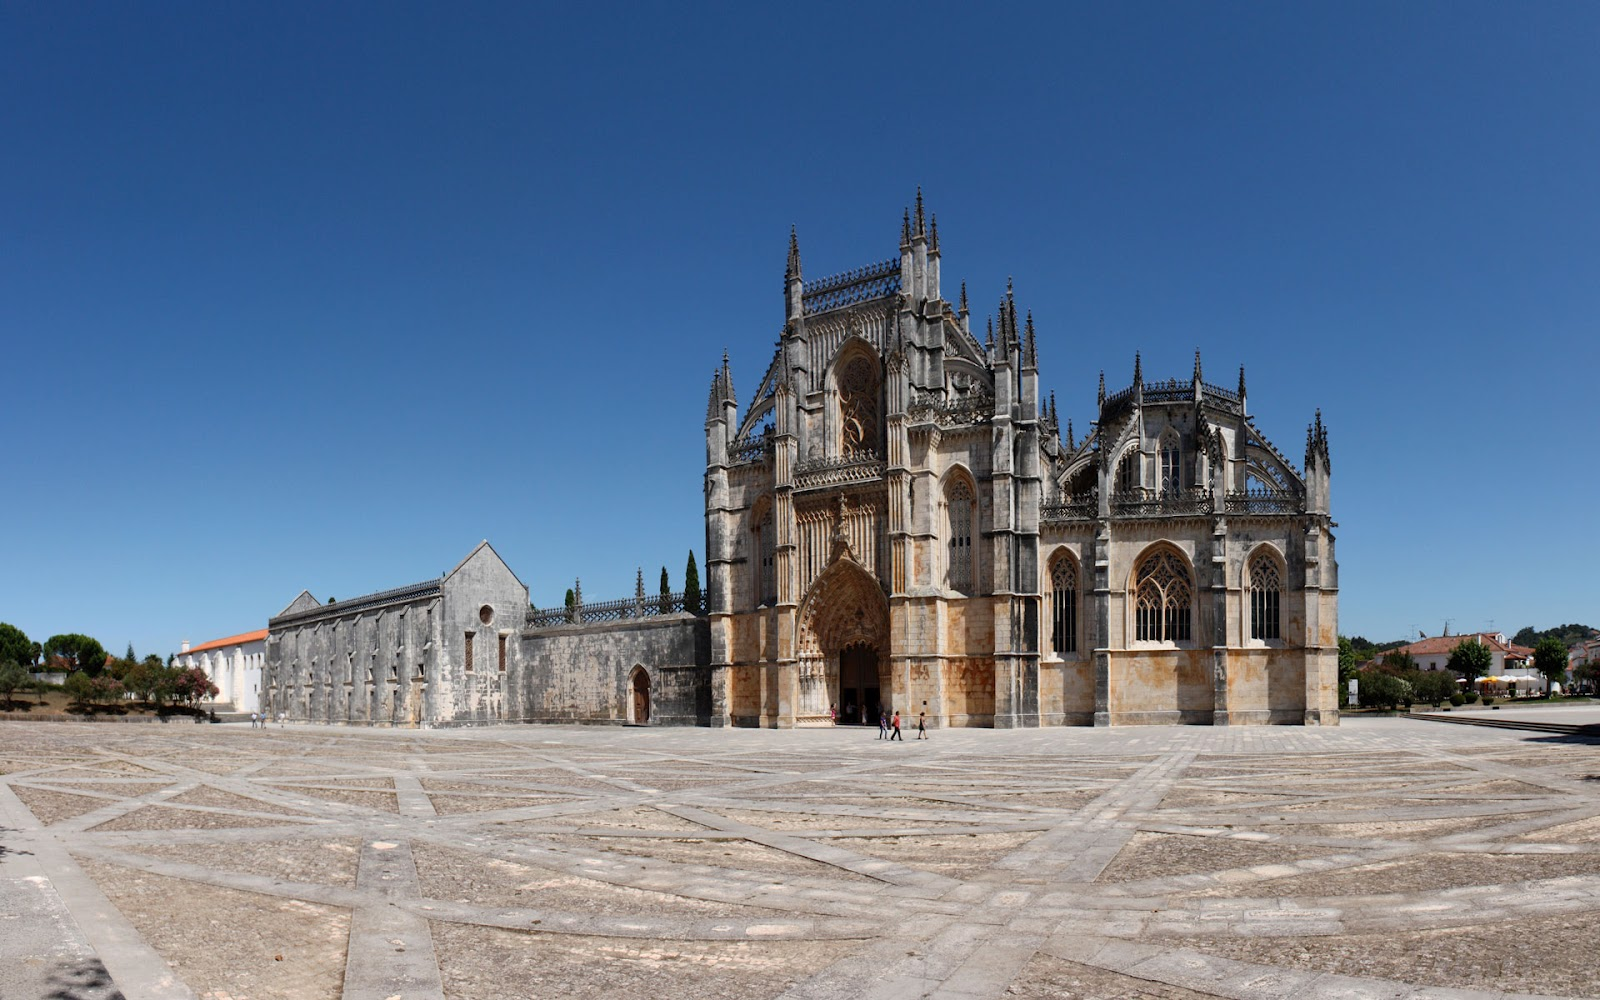 Alcobaca Portugal  City pictures : Monastery of Alcobaca, Portugal. | Southern European World Heritage ...